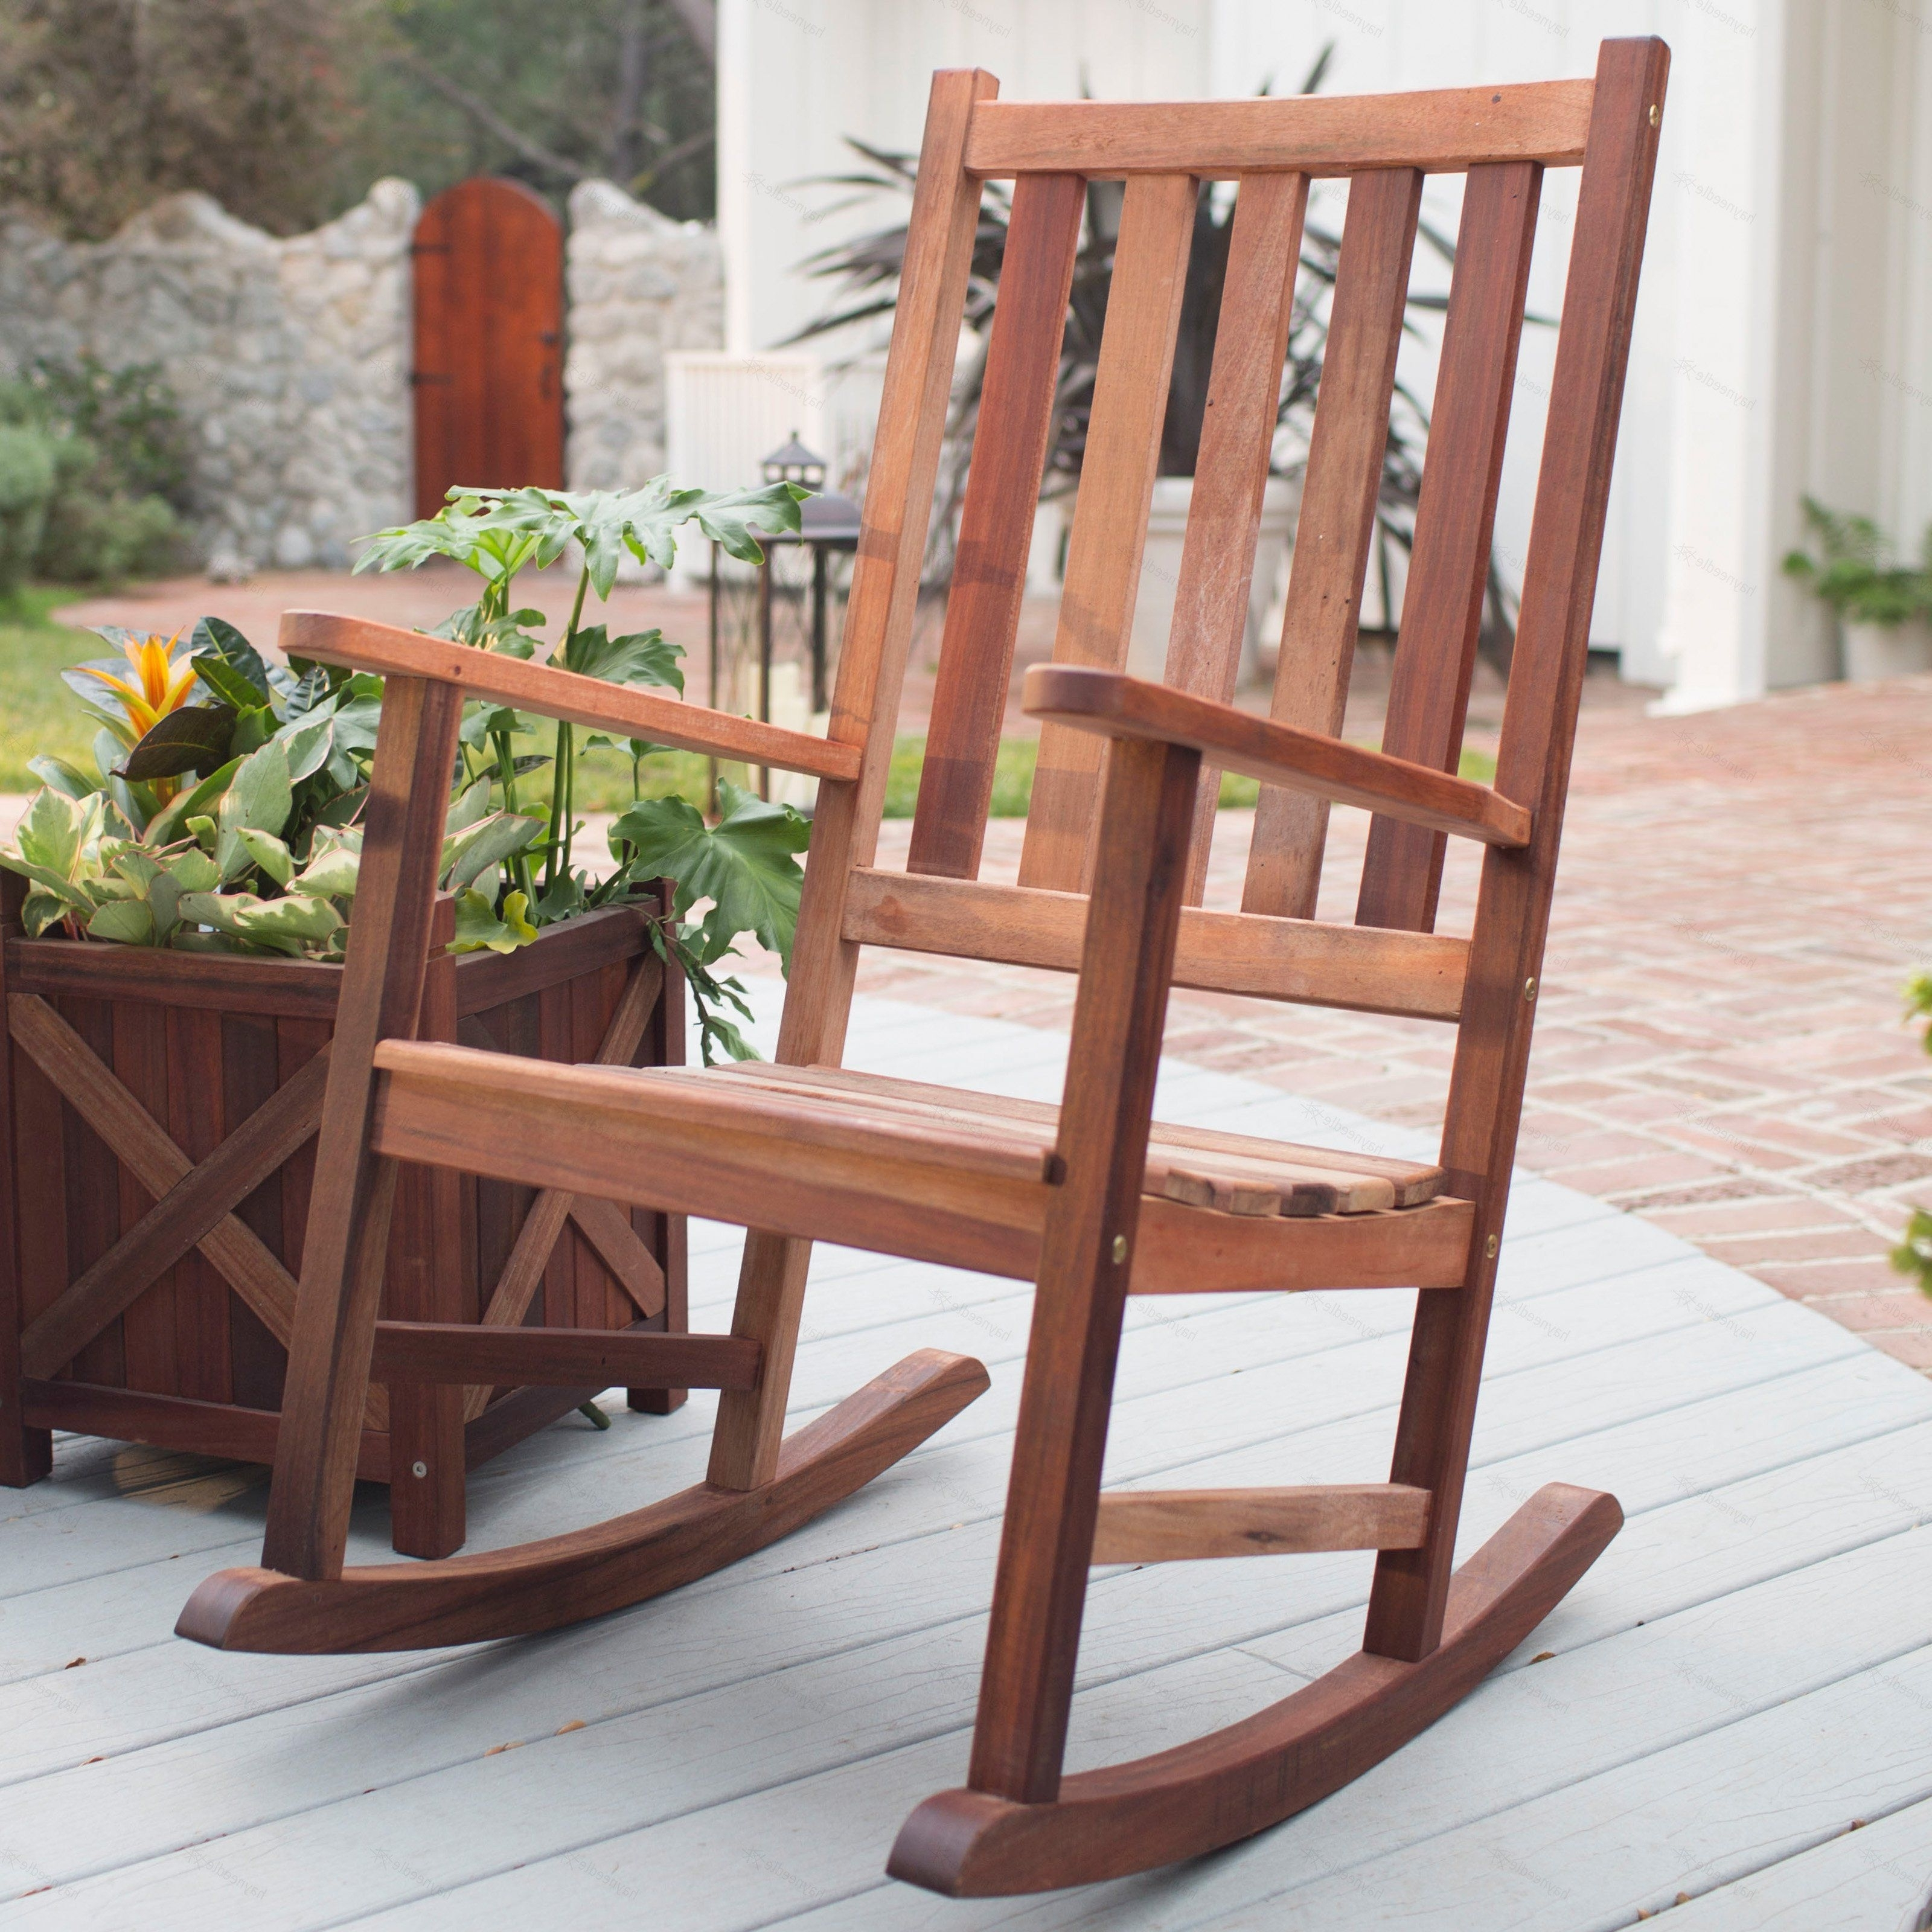 Trendy Belham Living Richmond Heavy Duty Outdoor Wooden Rocking Chair Pertaining To Rocking Chair Outdoor Wooden (View 13 of 15)